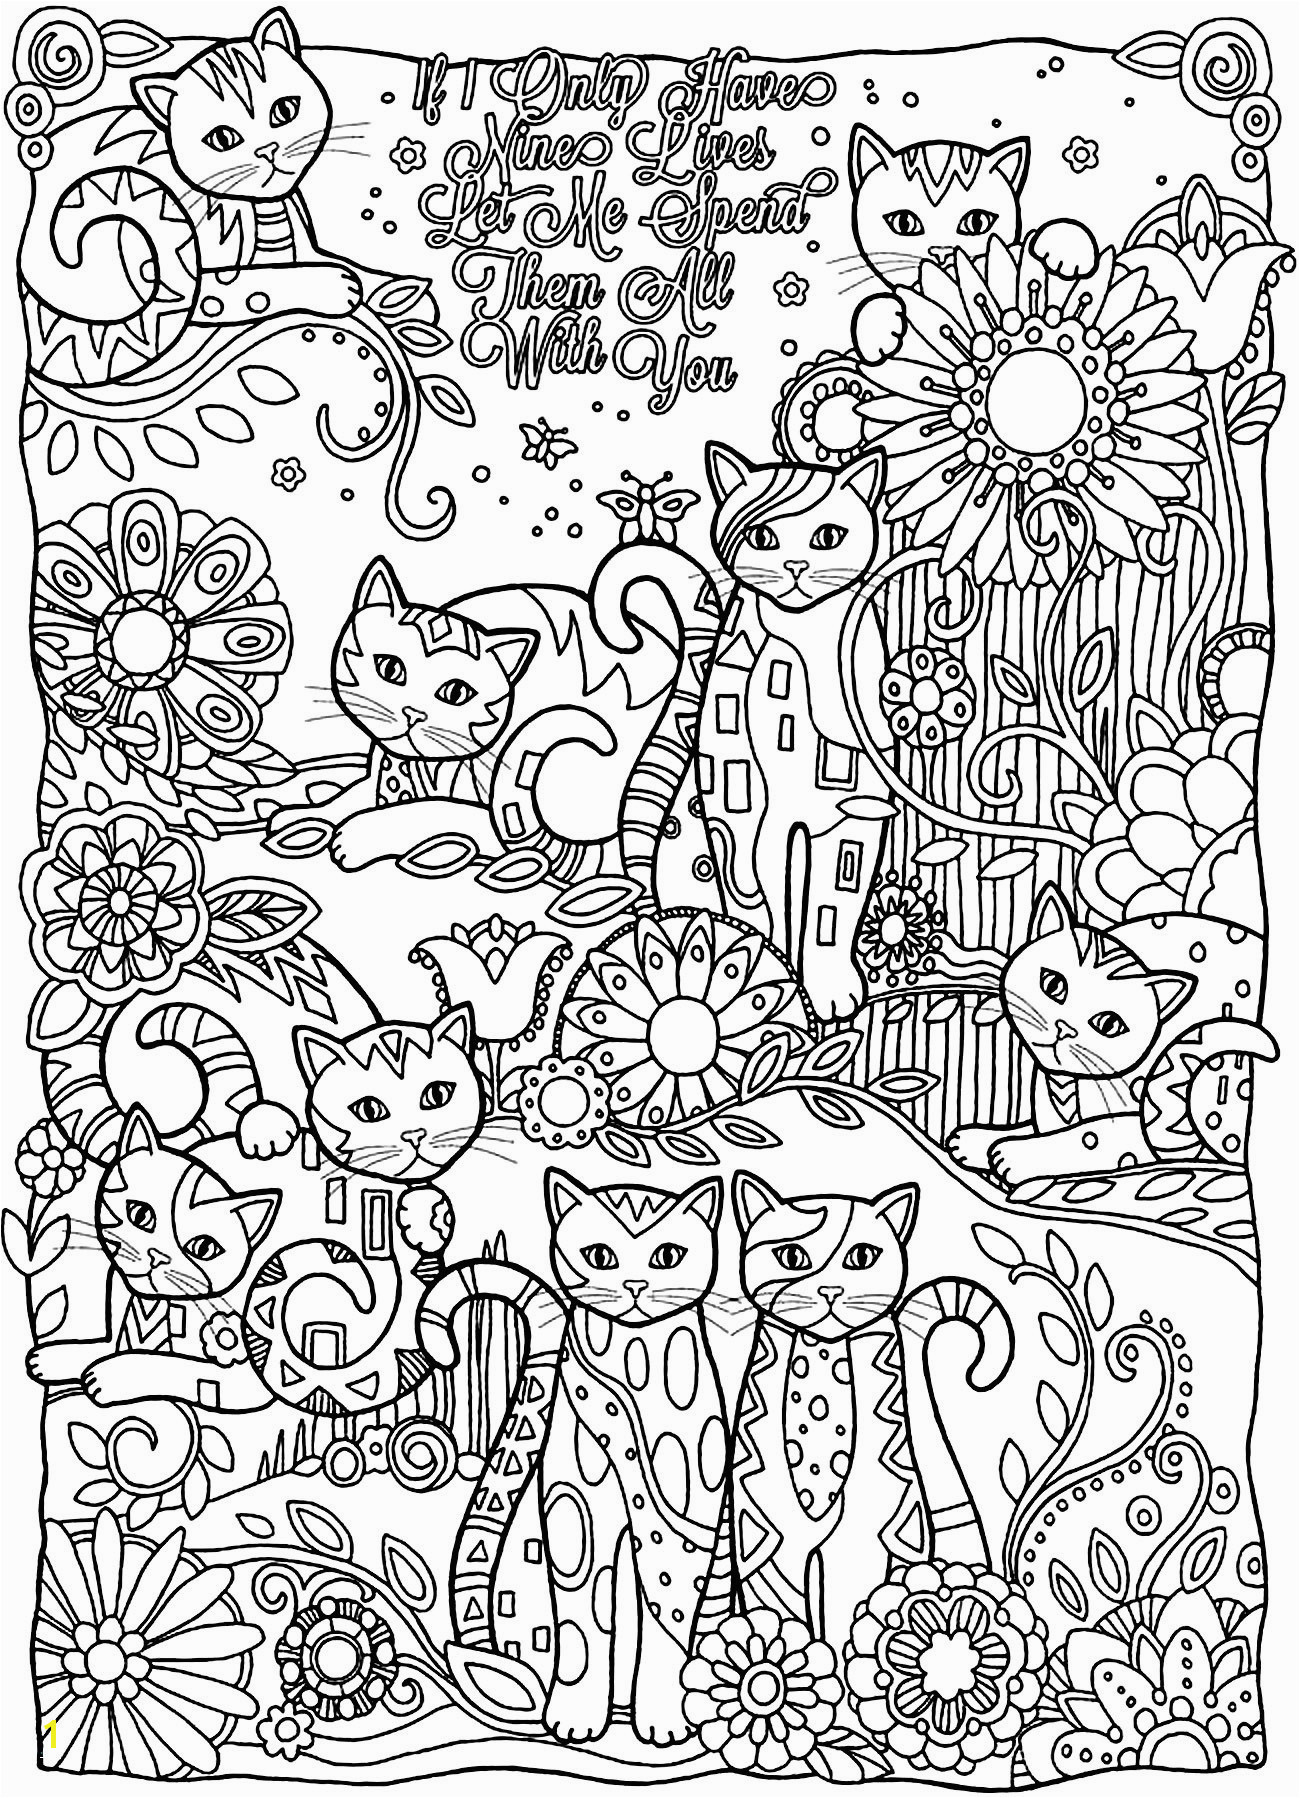 Coloring Pages for Kids to Color for Dads Latest Honor Thy Father and Mother Coloring Pages